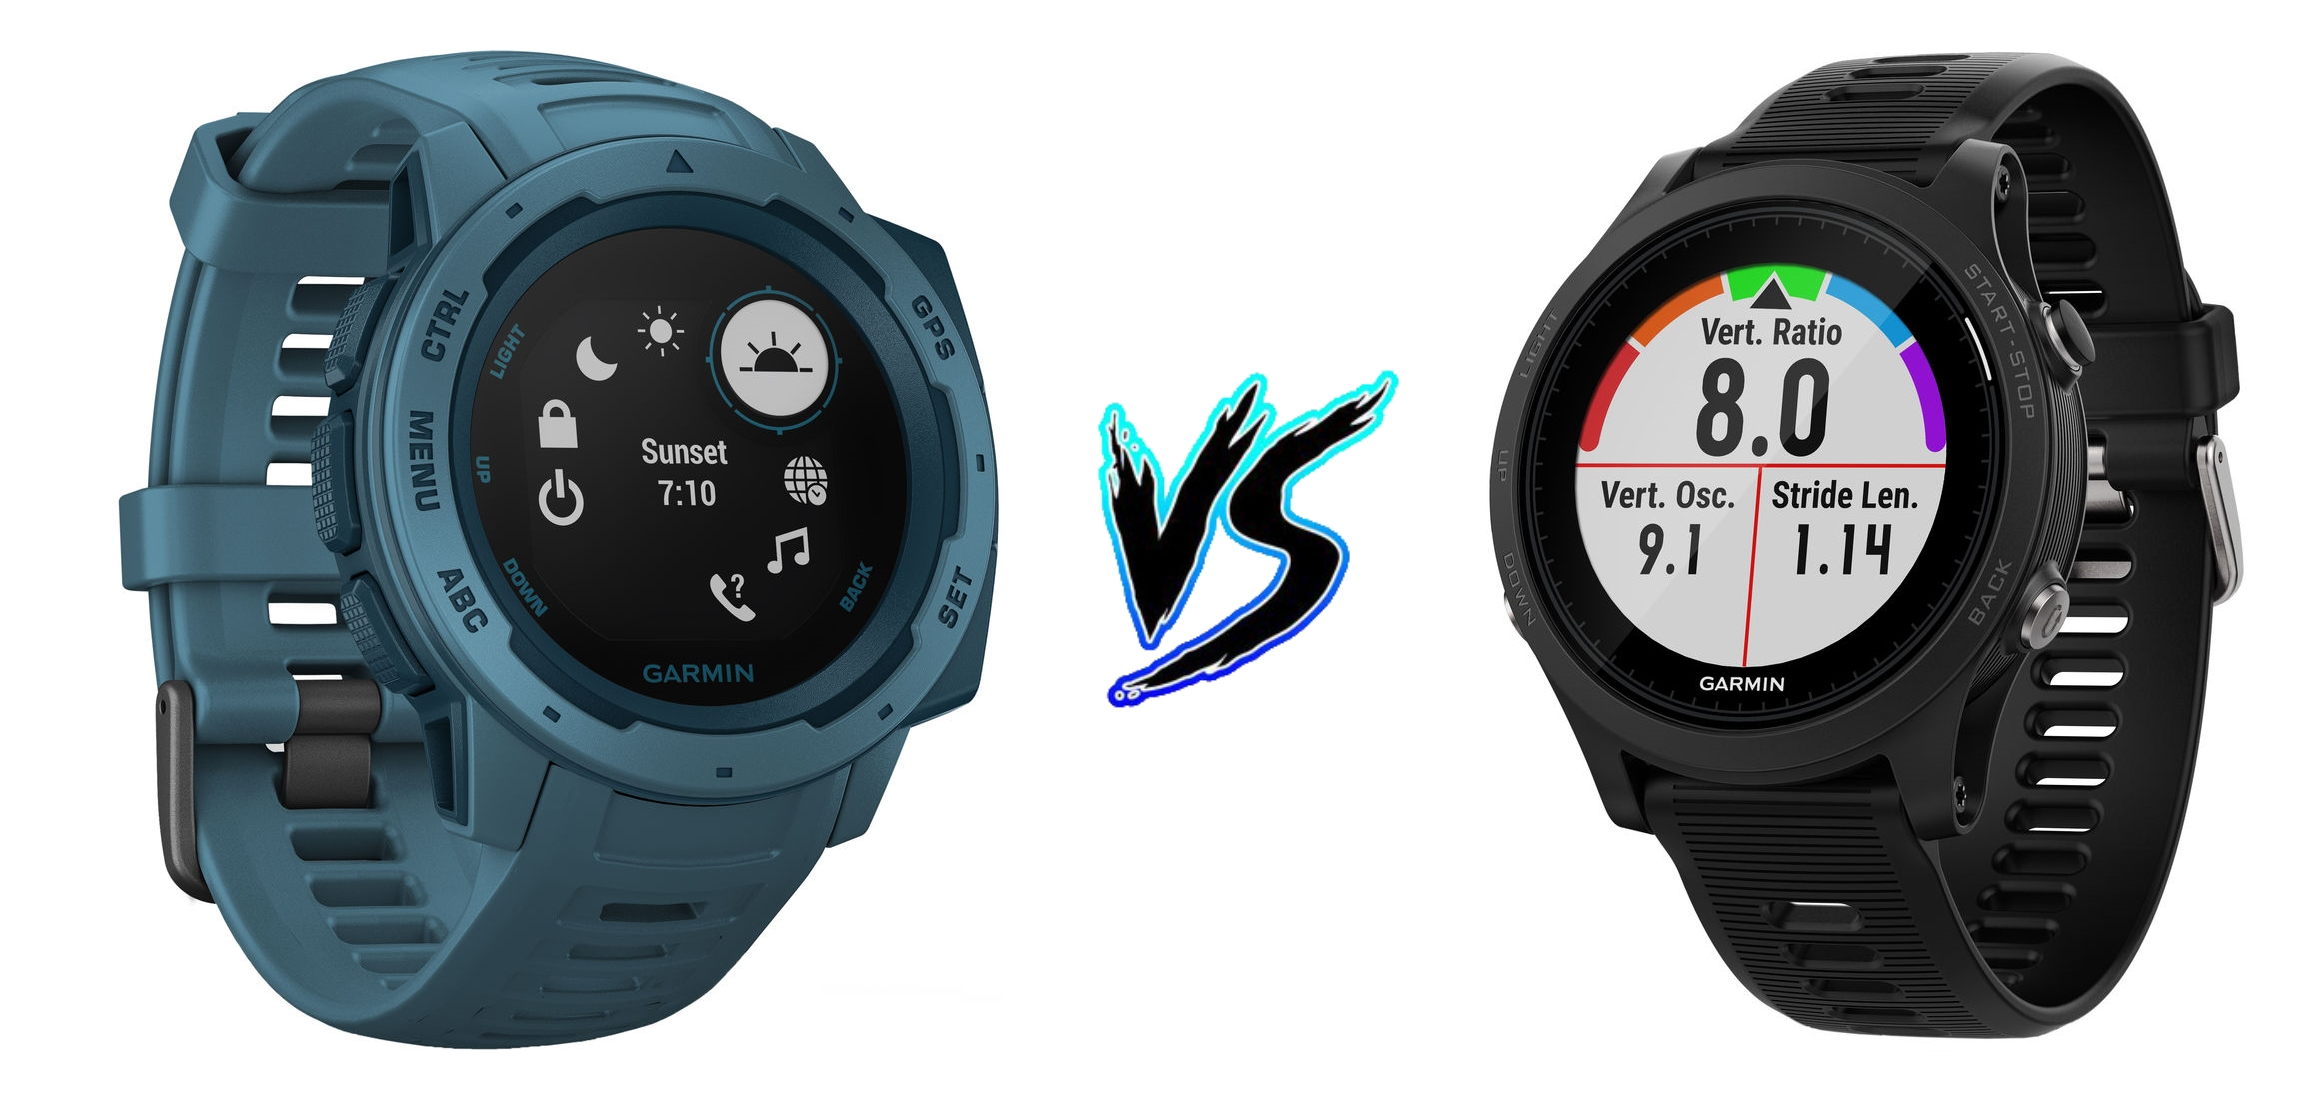 Garmin Instinct vs Forerunner 935